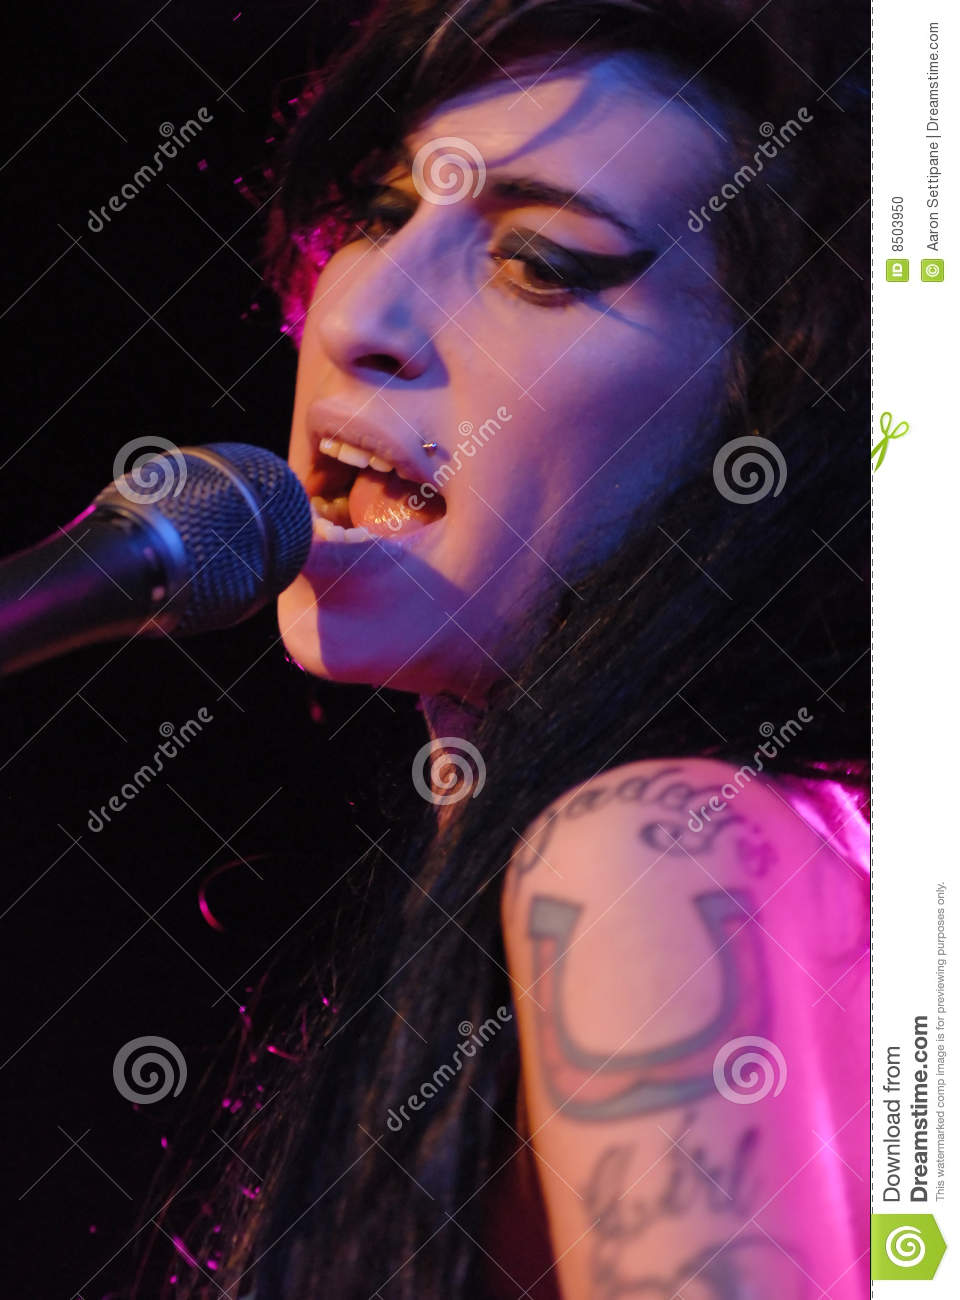 Amy Winehouse performing live